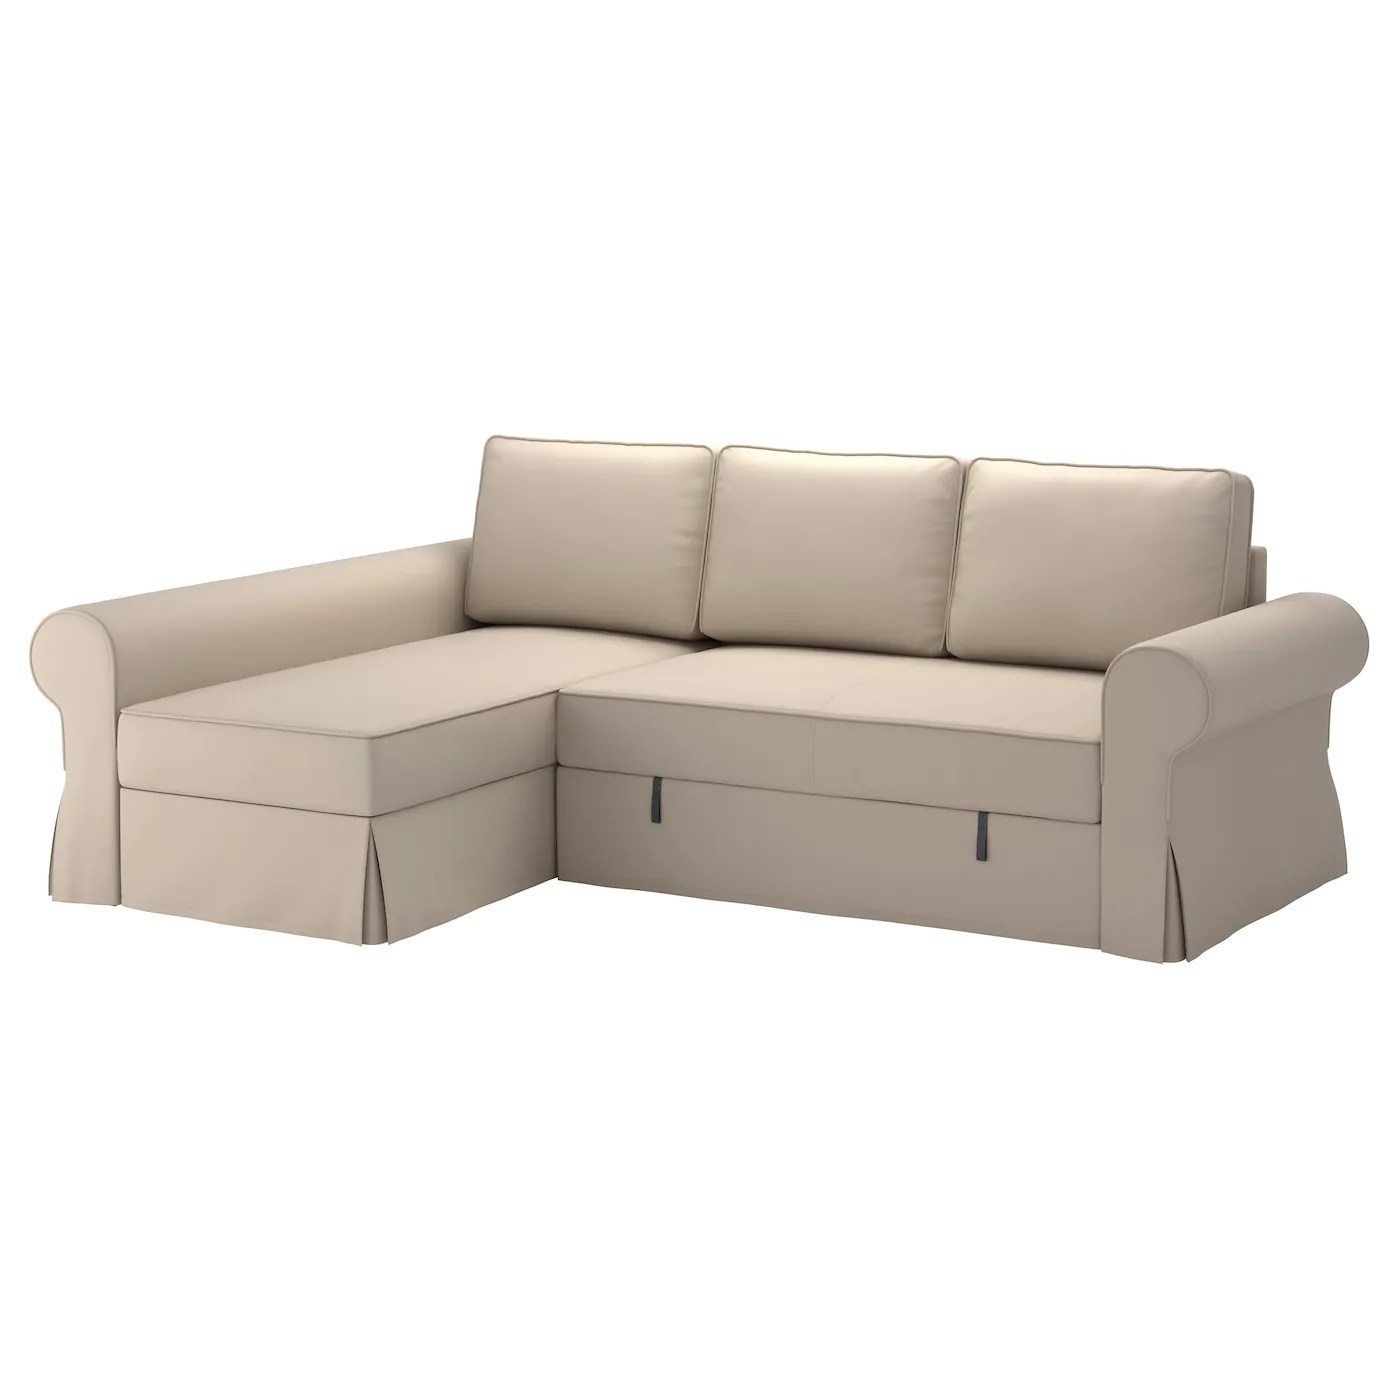 Chaise A Ikea Backabro Sofa Bed With Chaise Longue Ramna Beige Ikea